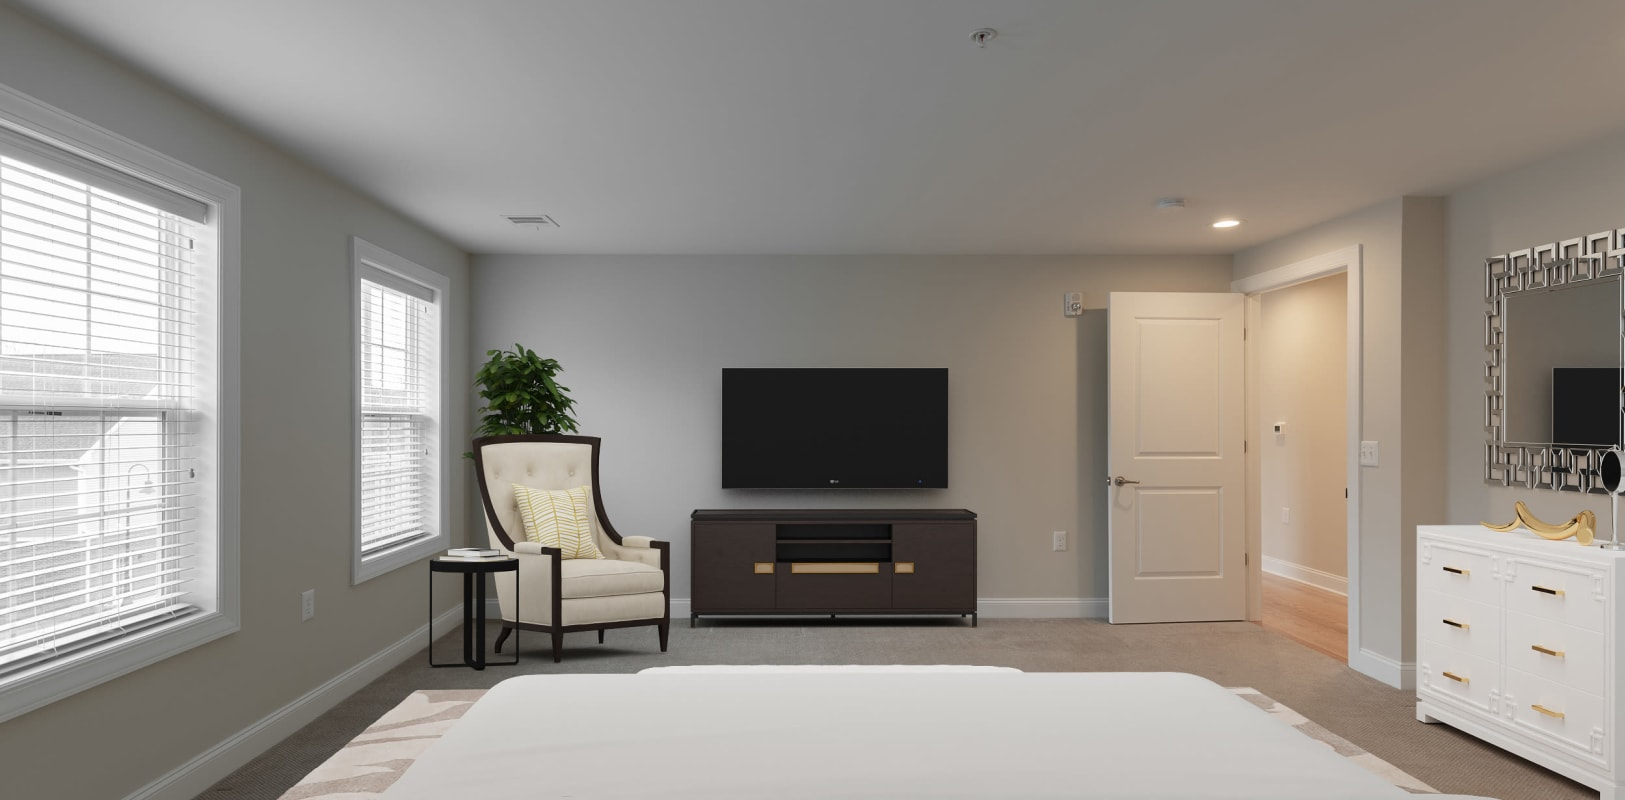 Bedroom with tons of space at Zephyr Ridge in Cedar Grove, New Jersey